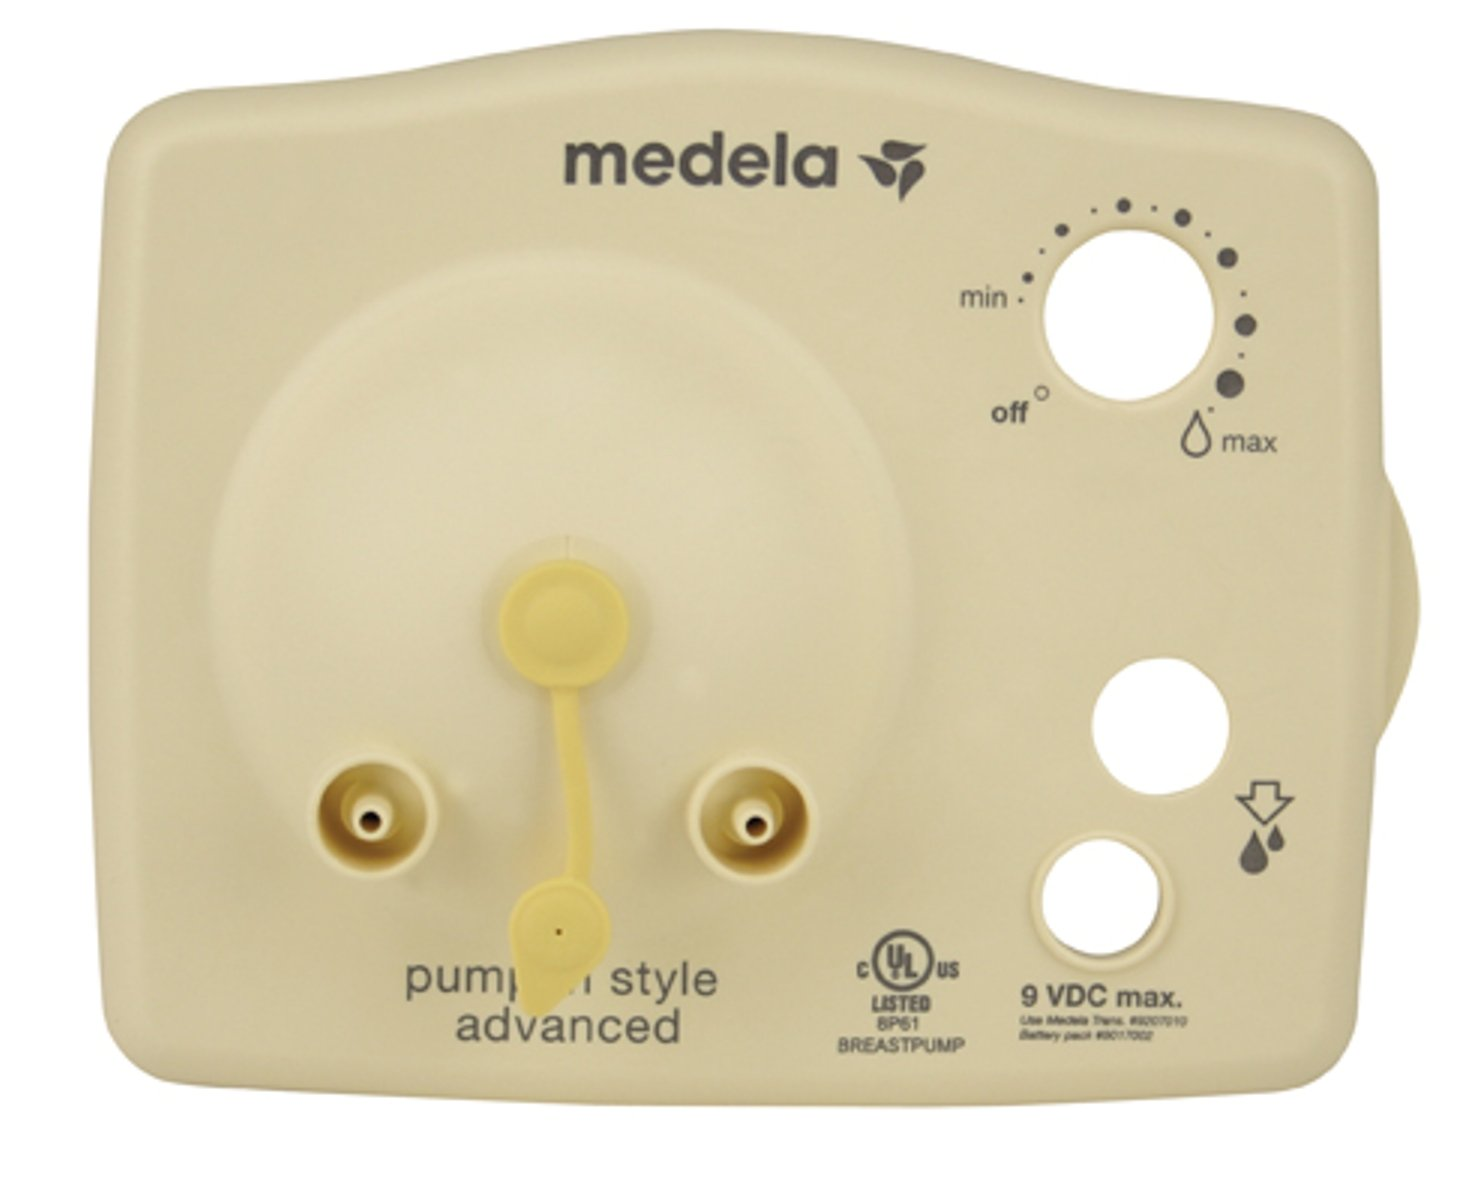 Medela Pump in Style Diaphragm Cap Faceplate – Spare Medela Pump Faceplate, Convenient Replacement Medela Parts for Pump in Style Advanced Breast Pump, Part Number 6007132